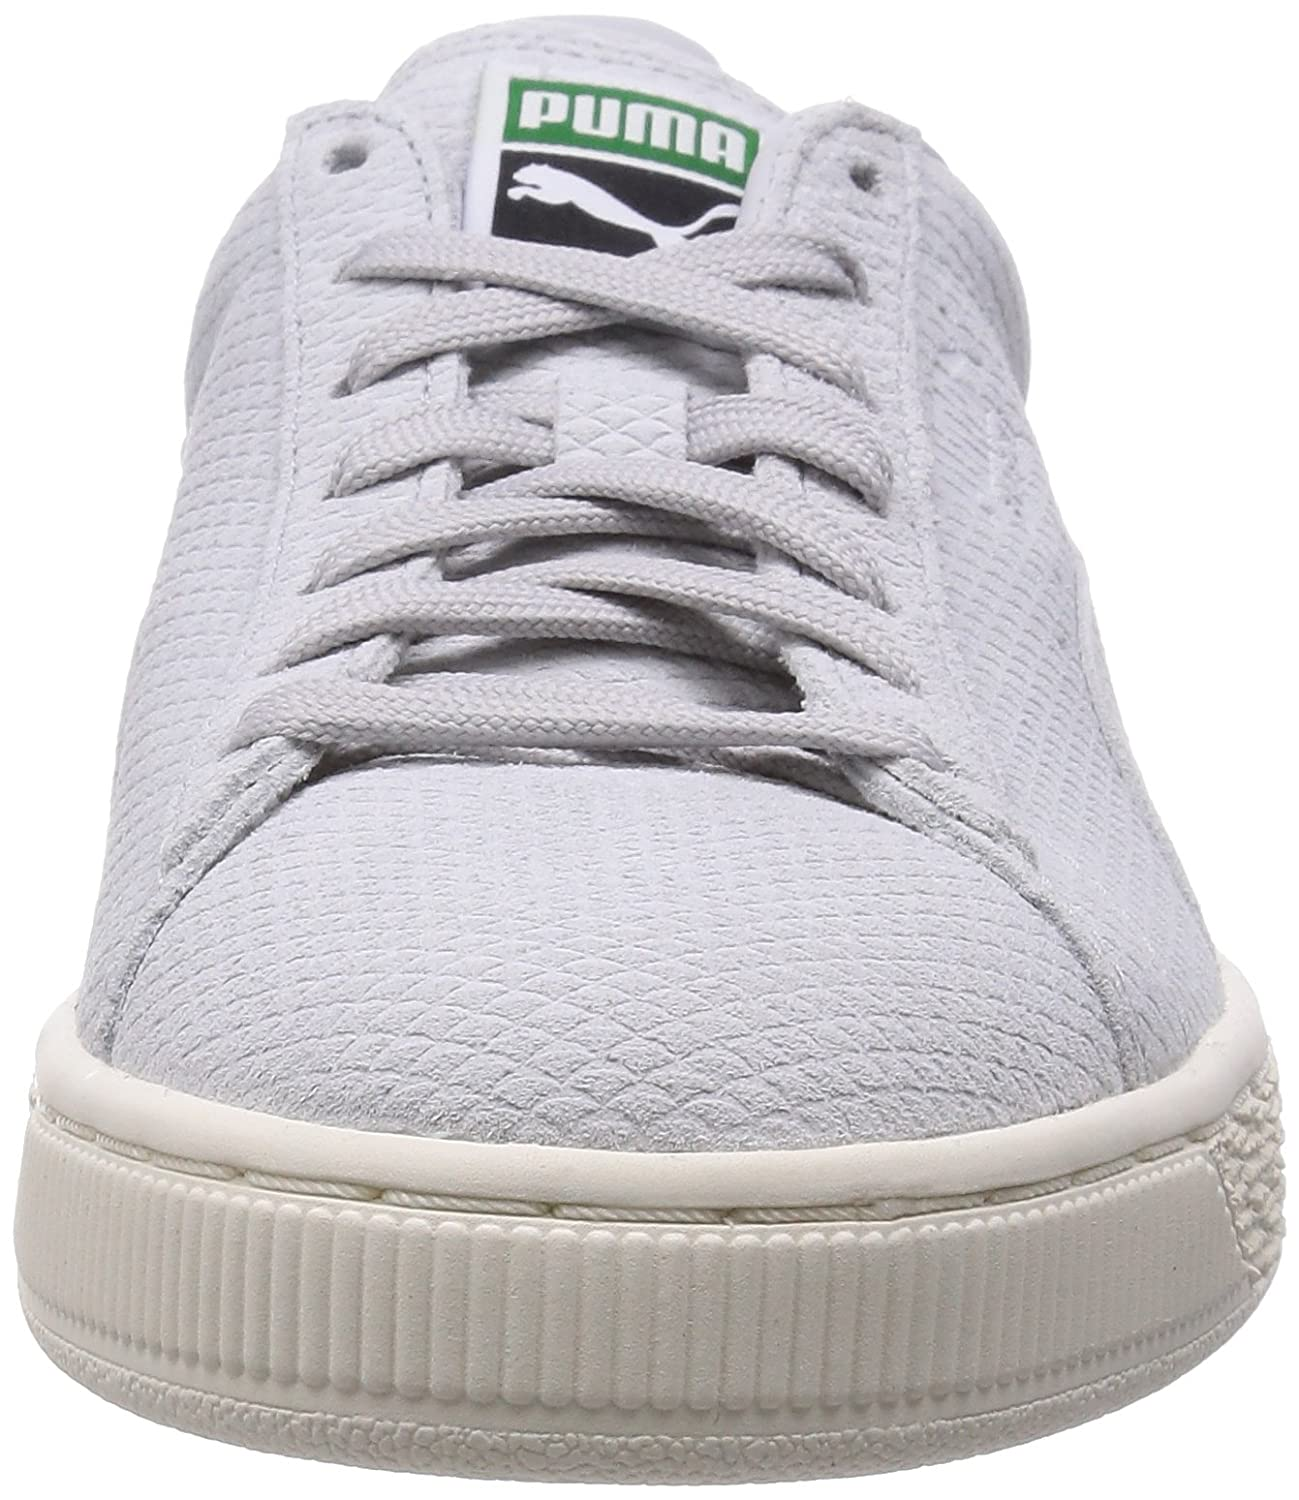 Puma Suede Classic + Mod Heritage, Unisex Adults' Low-Top Sneakers:  Amazon.co.uk: Shoes & Bags